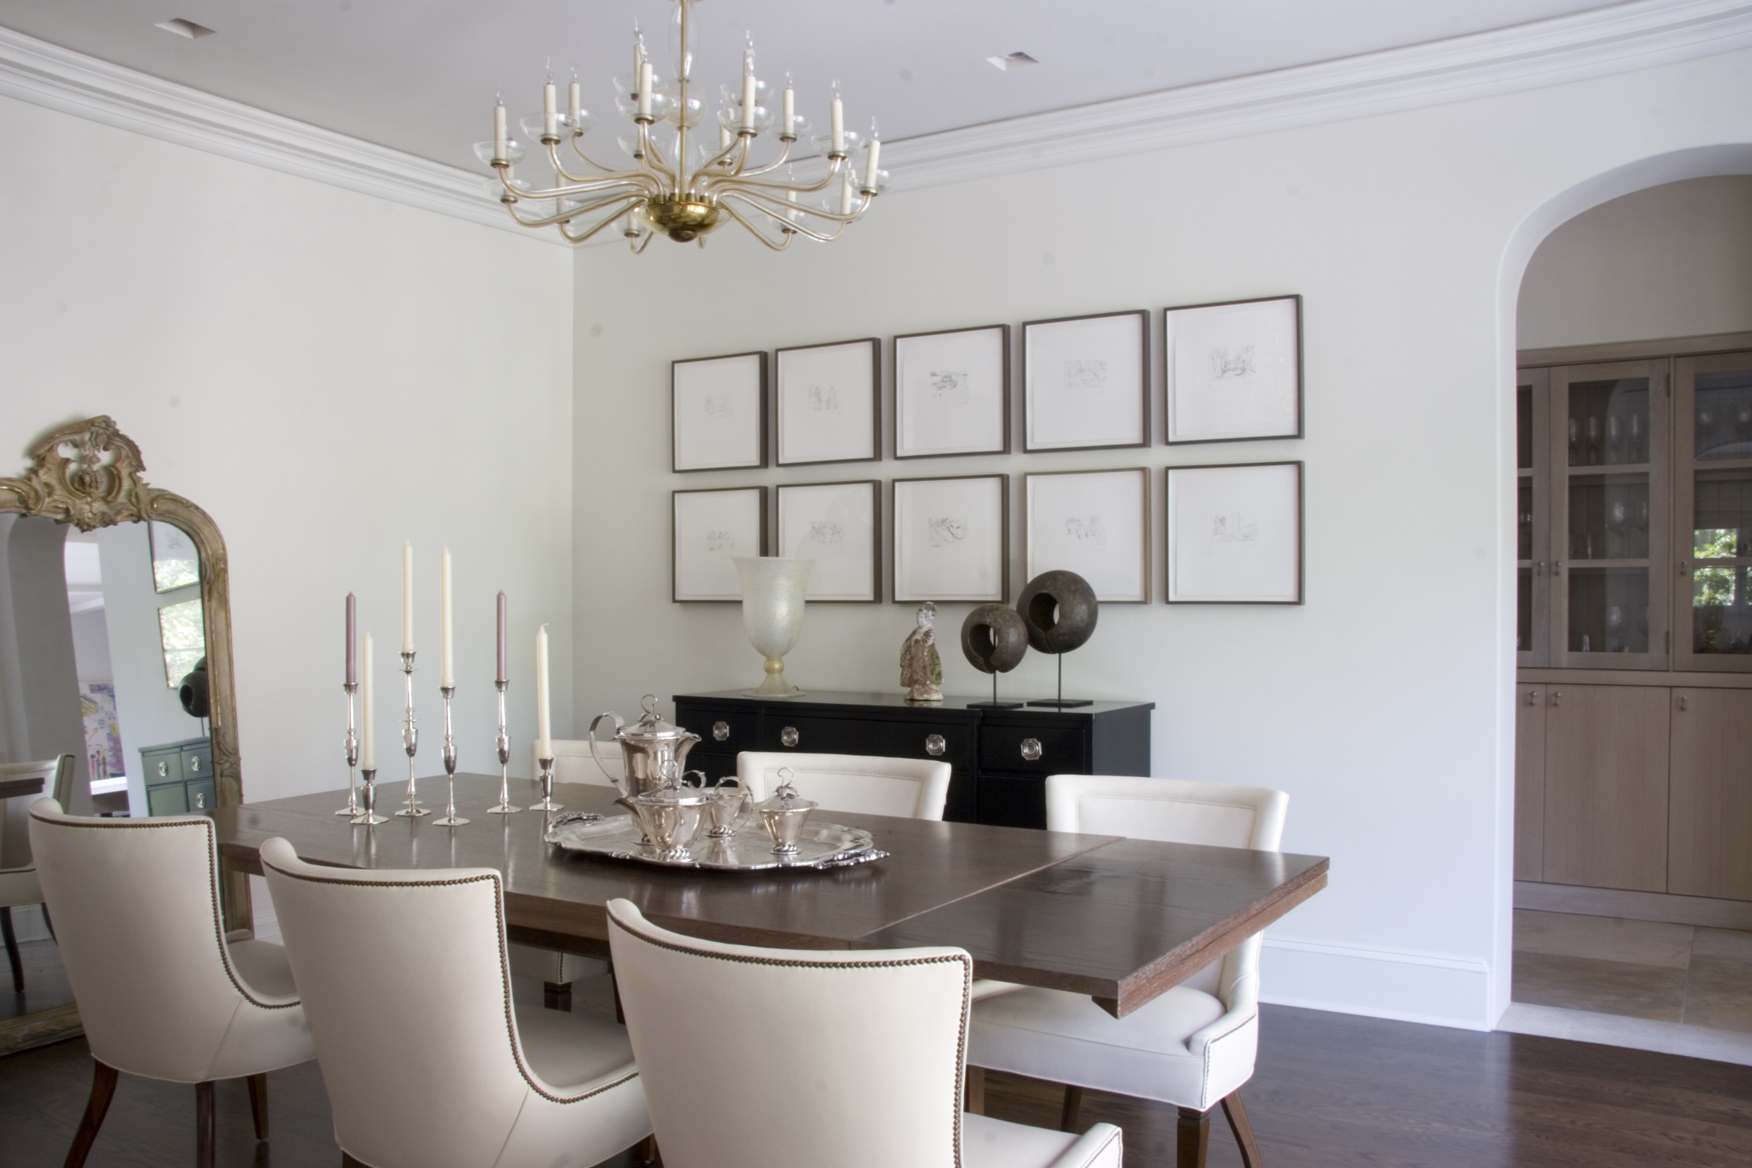 Studio_William_Hefner_products_verona_chair_DR_dining_room_WS_wide_shot